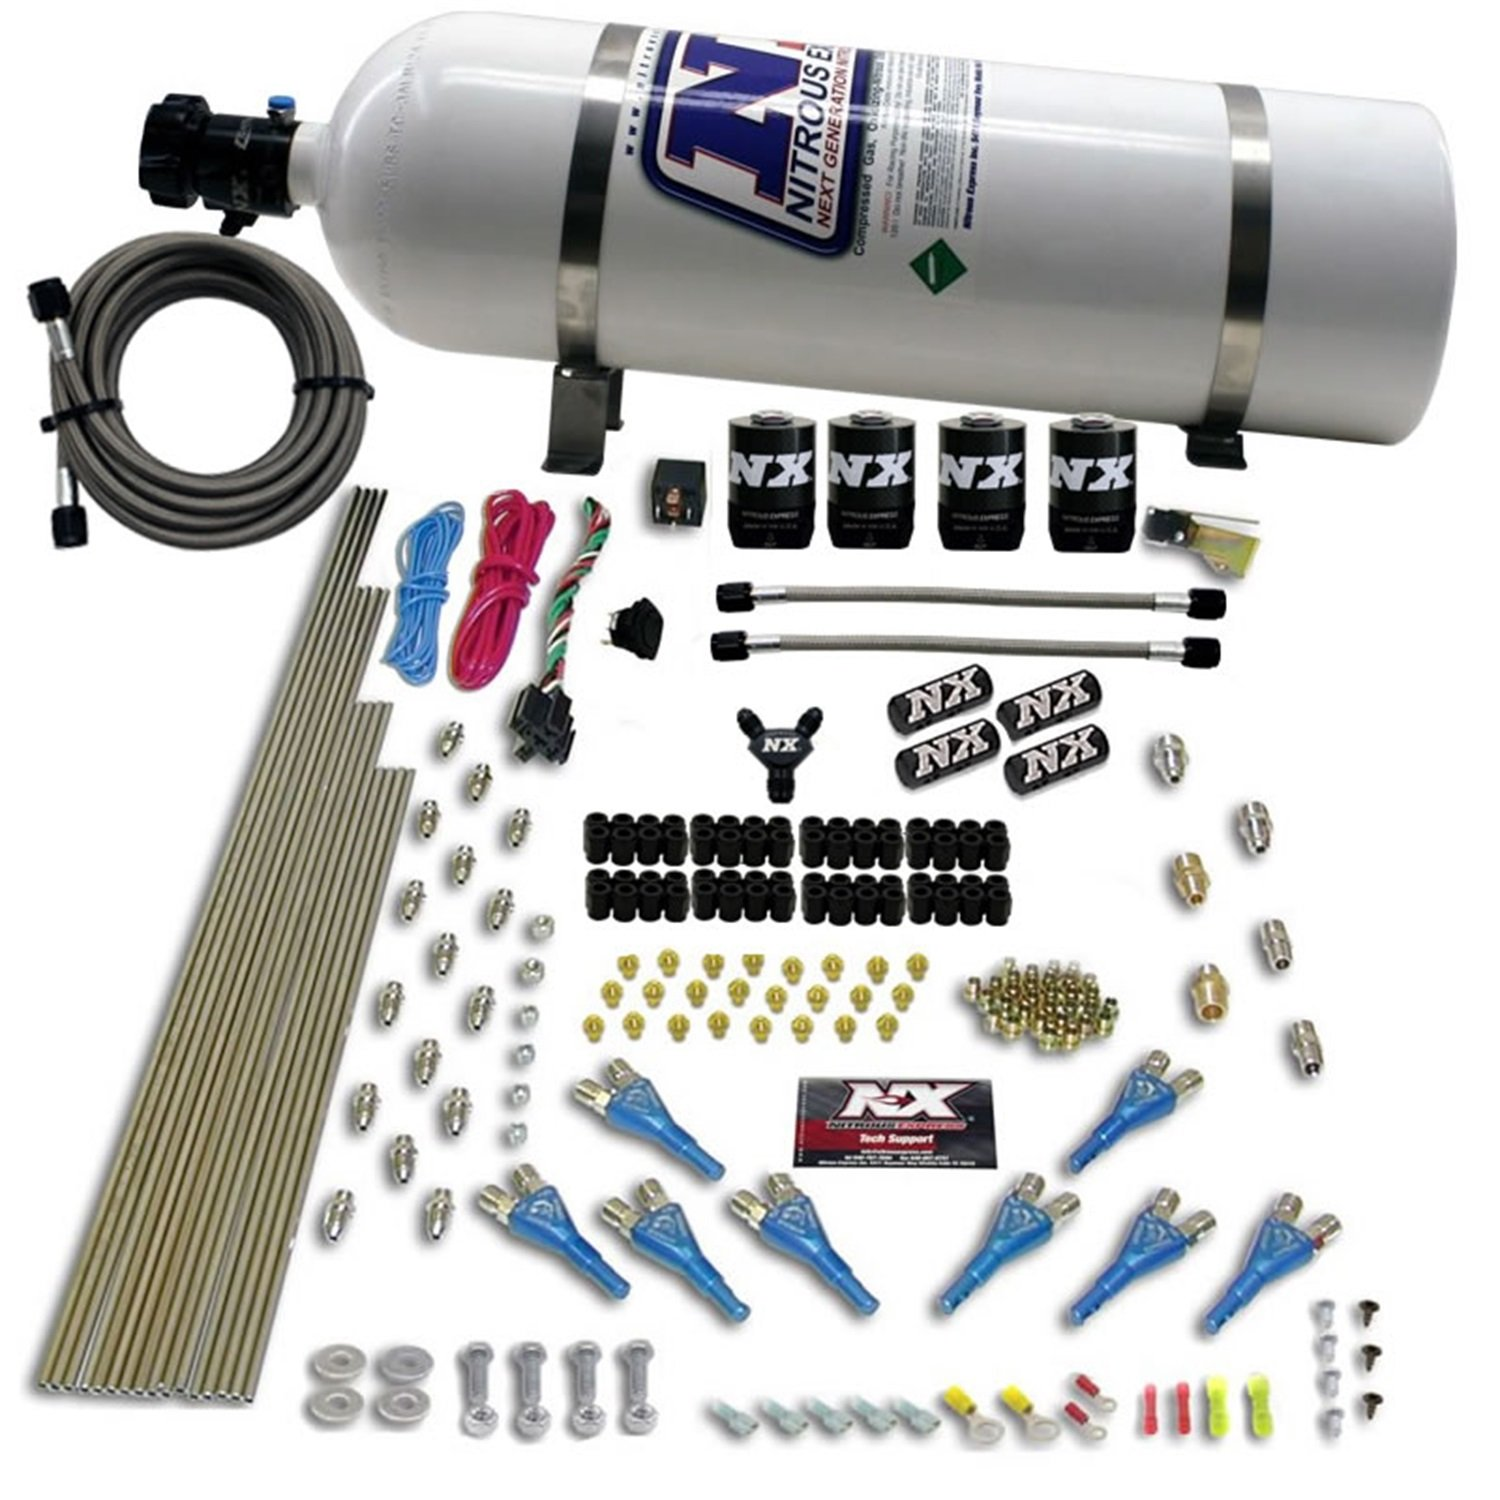 Nitrous Express 90006-15 200-600 HP 8-Cylinder Gasoline Shark Direct Port System with 4 Solenoids and 15 lbs. Bottle